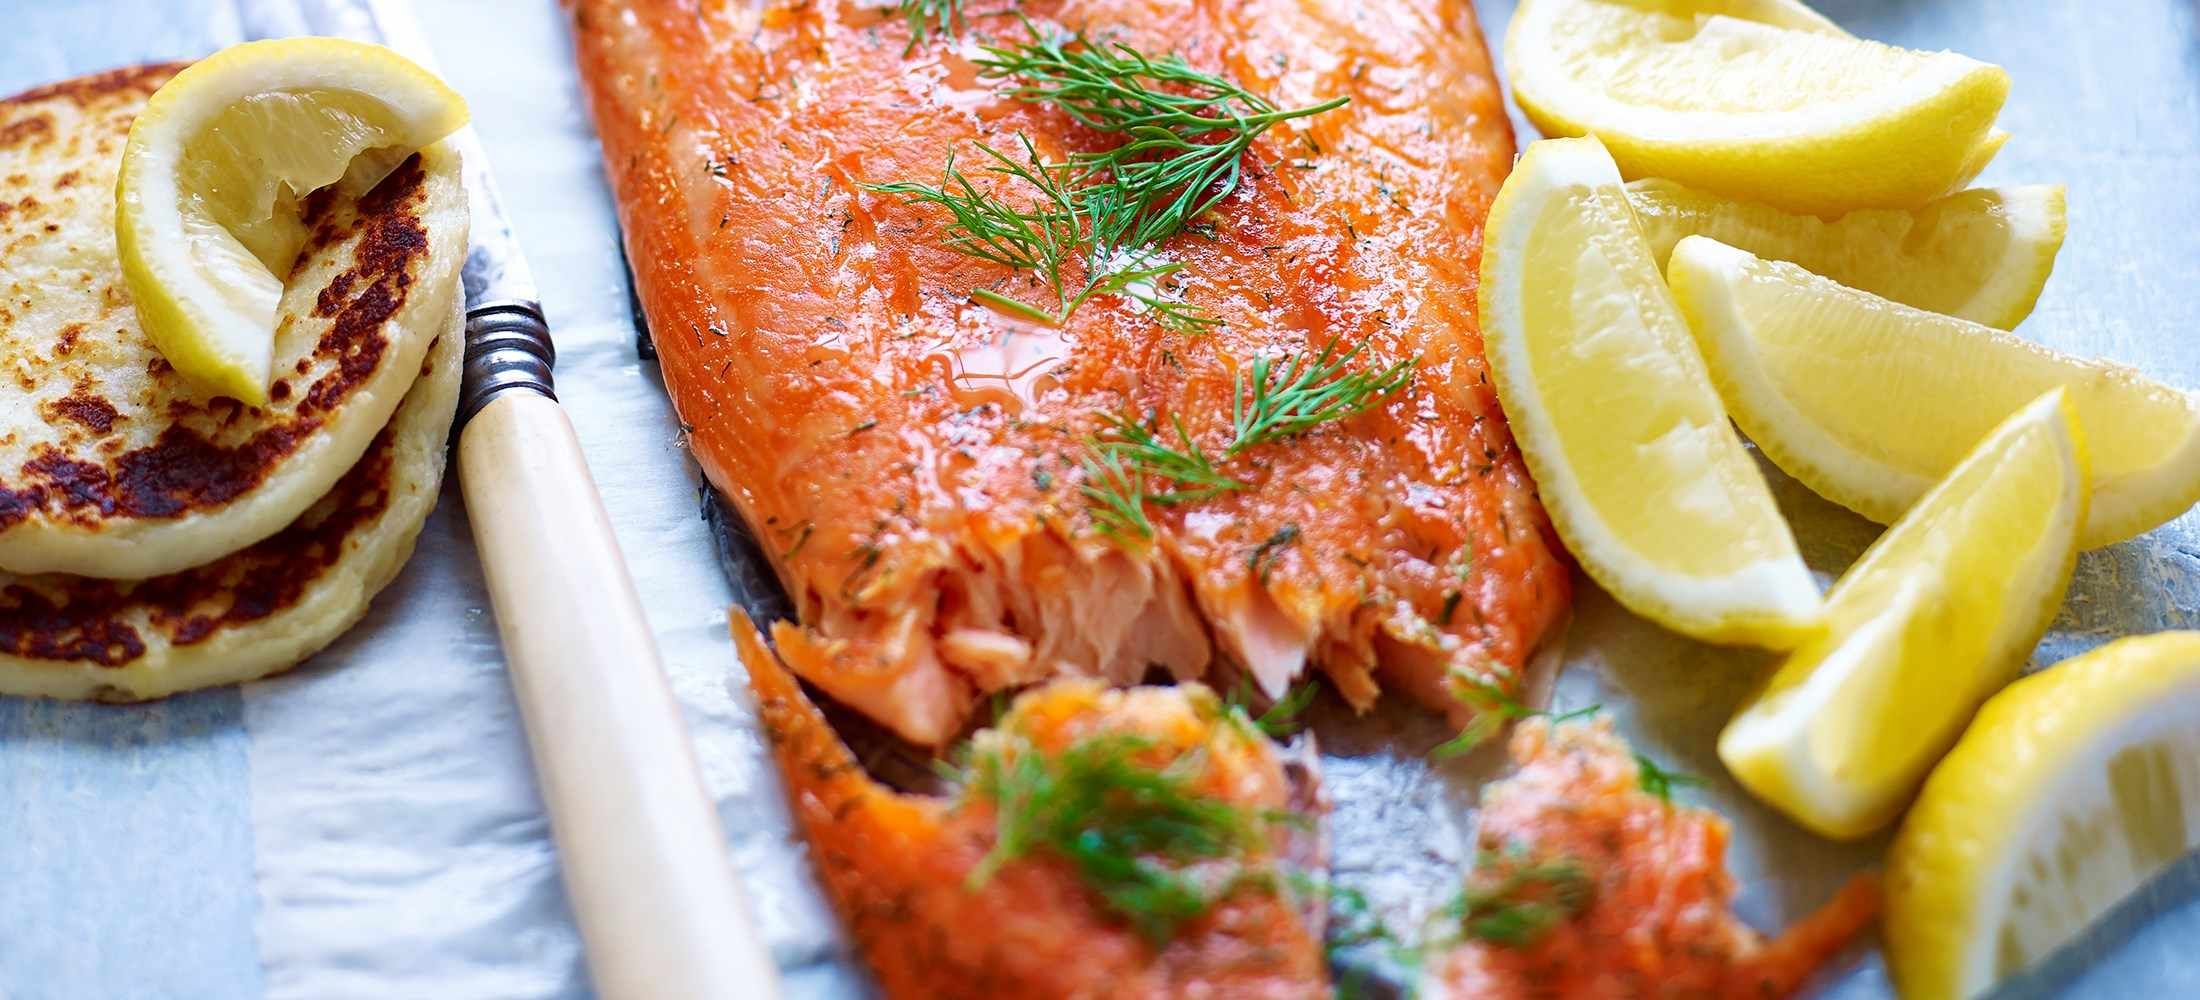 Dill and sugar-cured roast salmon